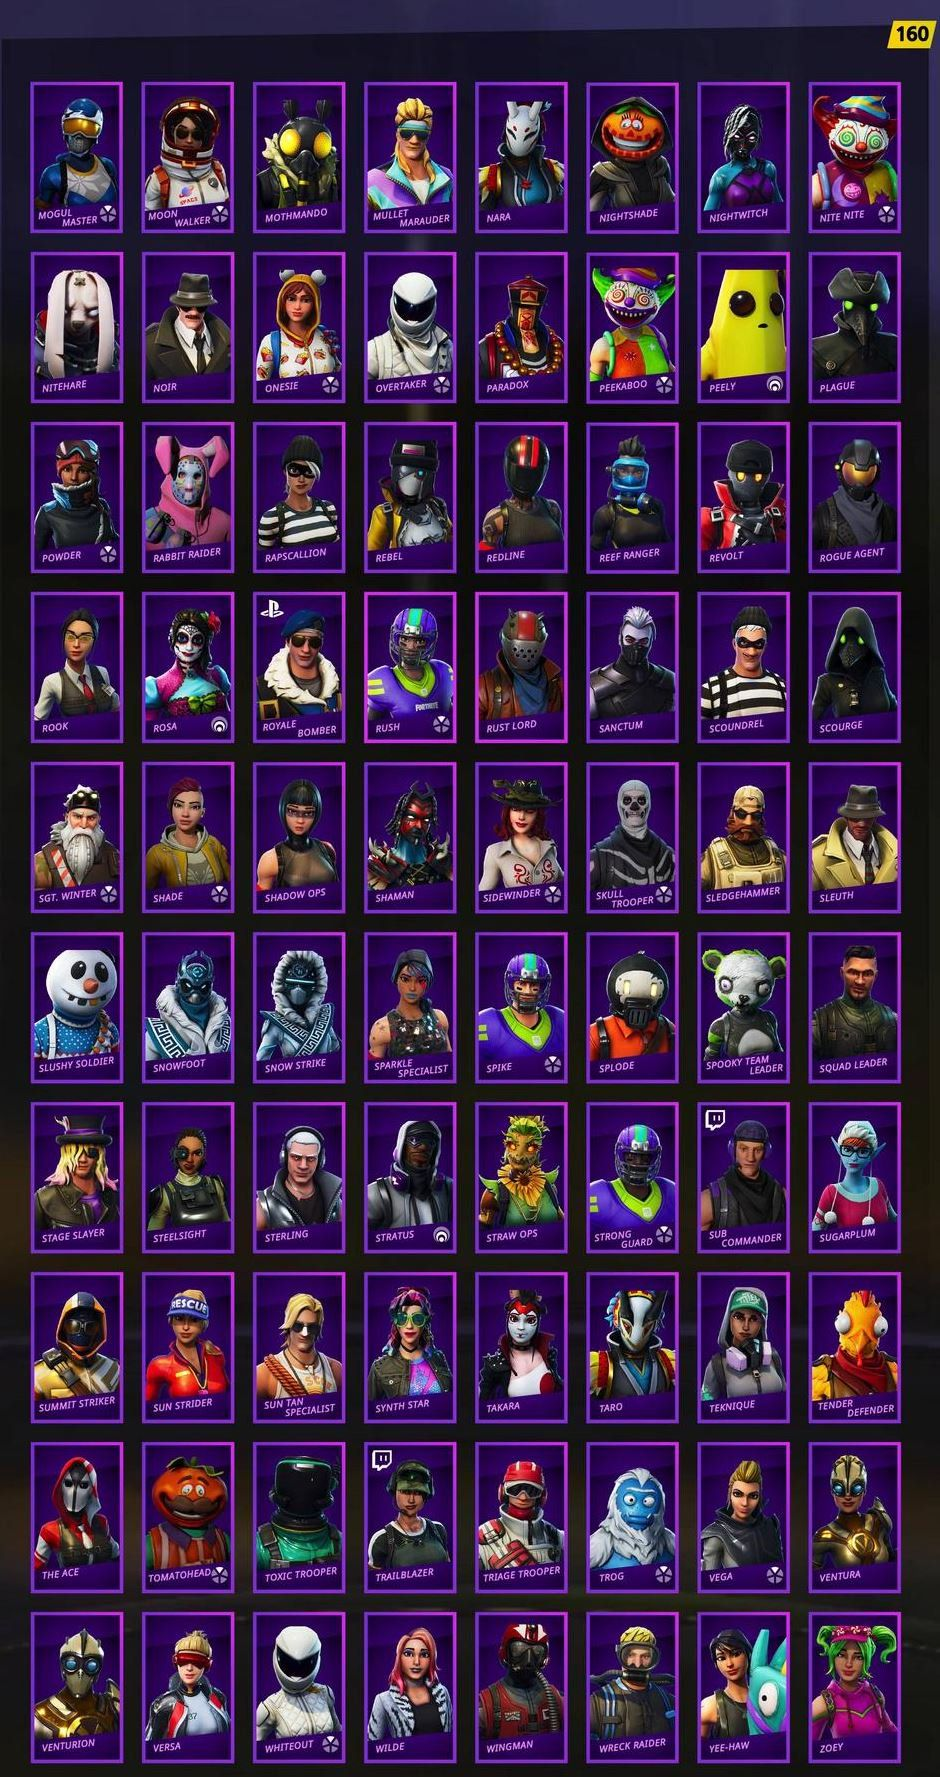 All Fortnite Skins Ever Released Item Shop Battle Pass Exclusives Fortnite Insider Best Gaming Wallpapers Epic Games Fortnite Fortnite